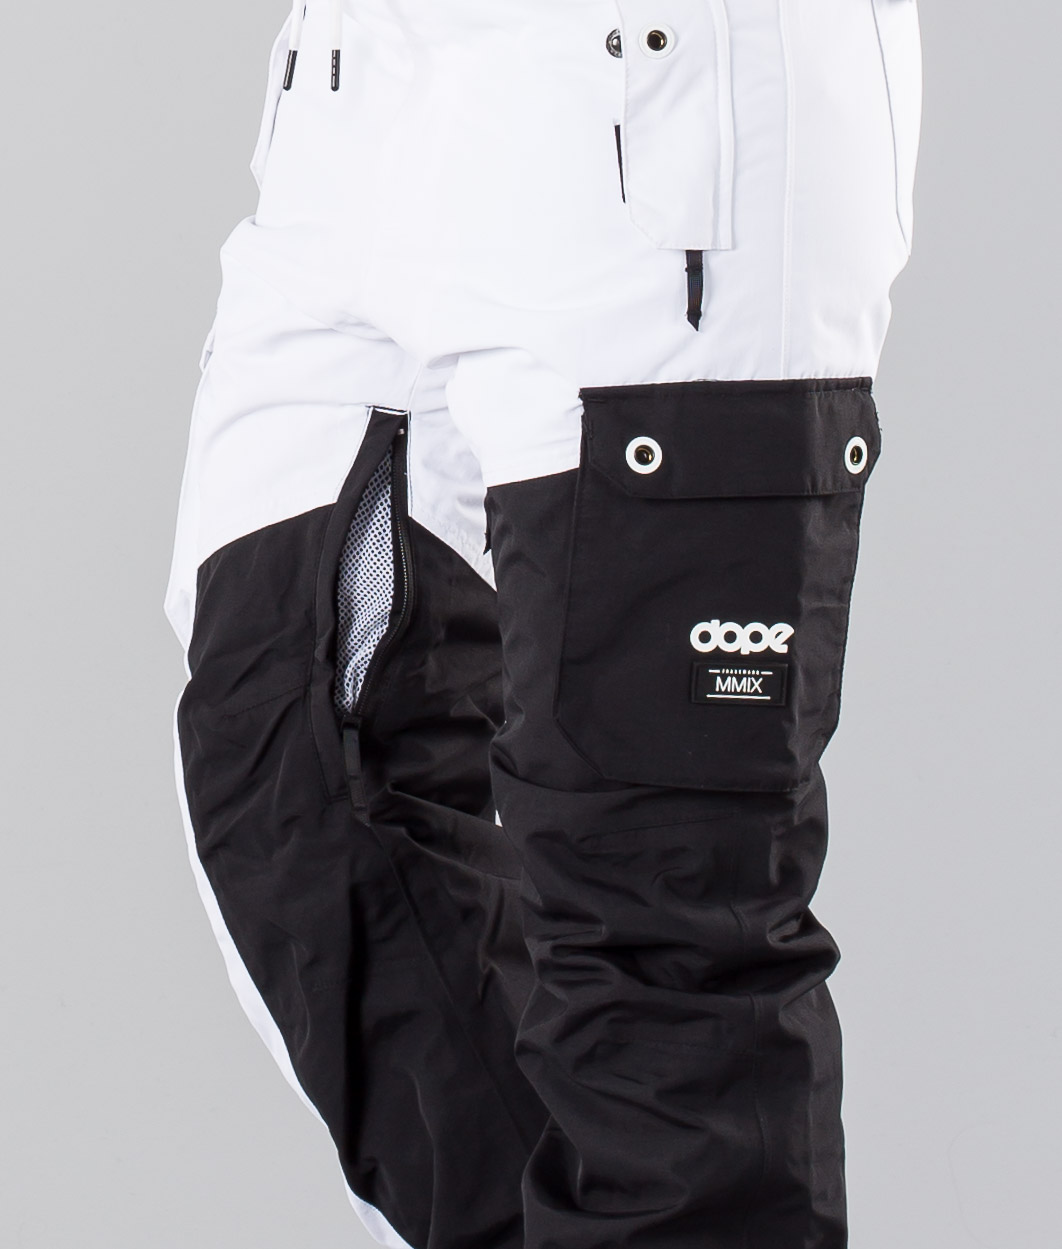 5a15a06856 Dope adept snow pants black white jpg 1062x1249 Dope snow white